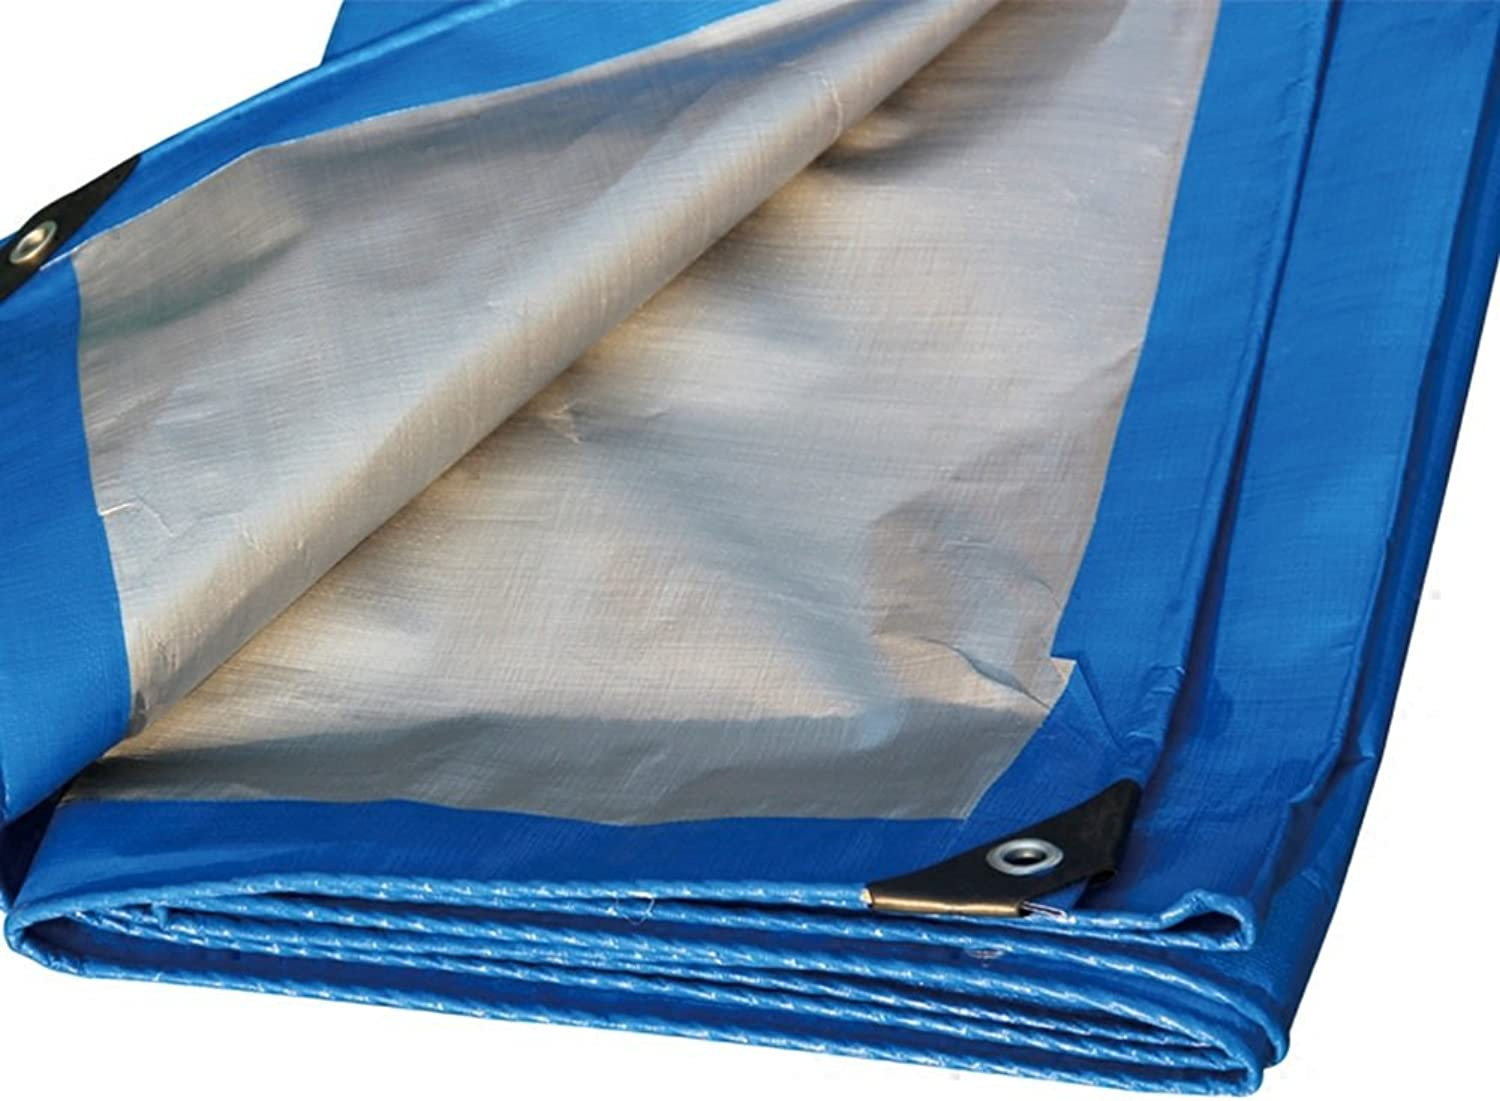 bluee color Polyethylene Plus Thick Rain Cloth Waterproof Sun Predection 10 Kinds Size Can Be Used for Warehouses Construction Trucks Factories and EnterprisesGulf Pier